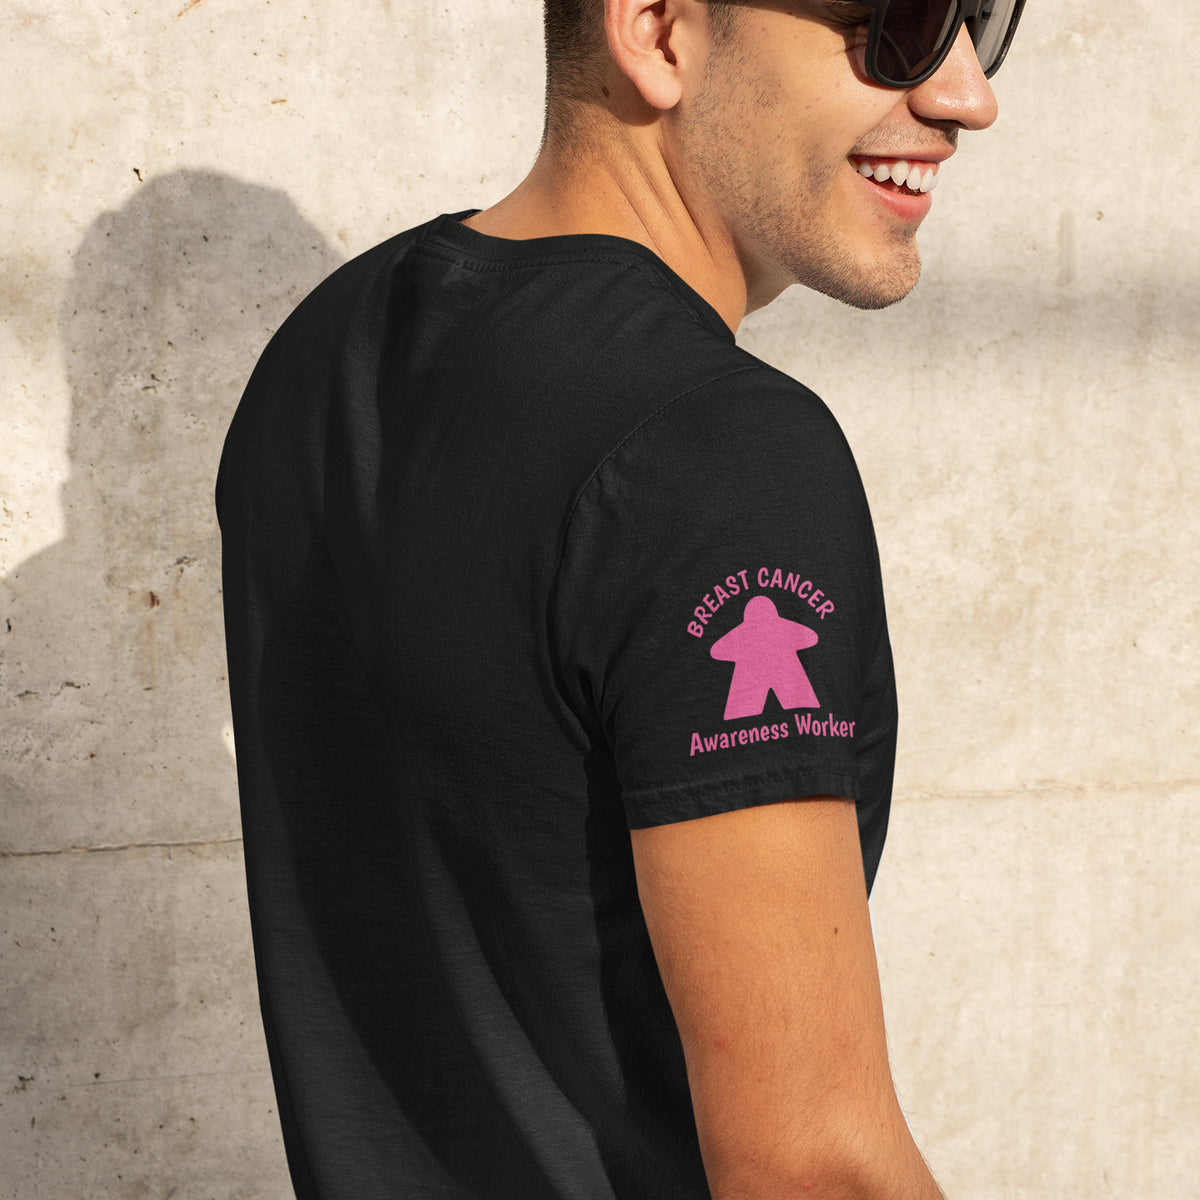 Meeple Breast Cancer Awareness Worker T-Shirt